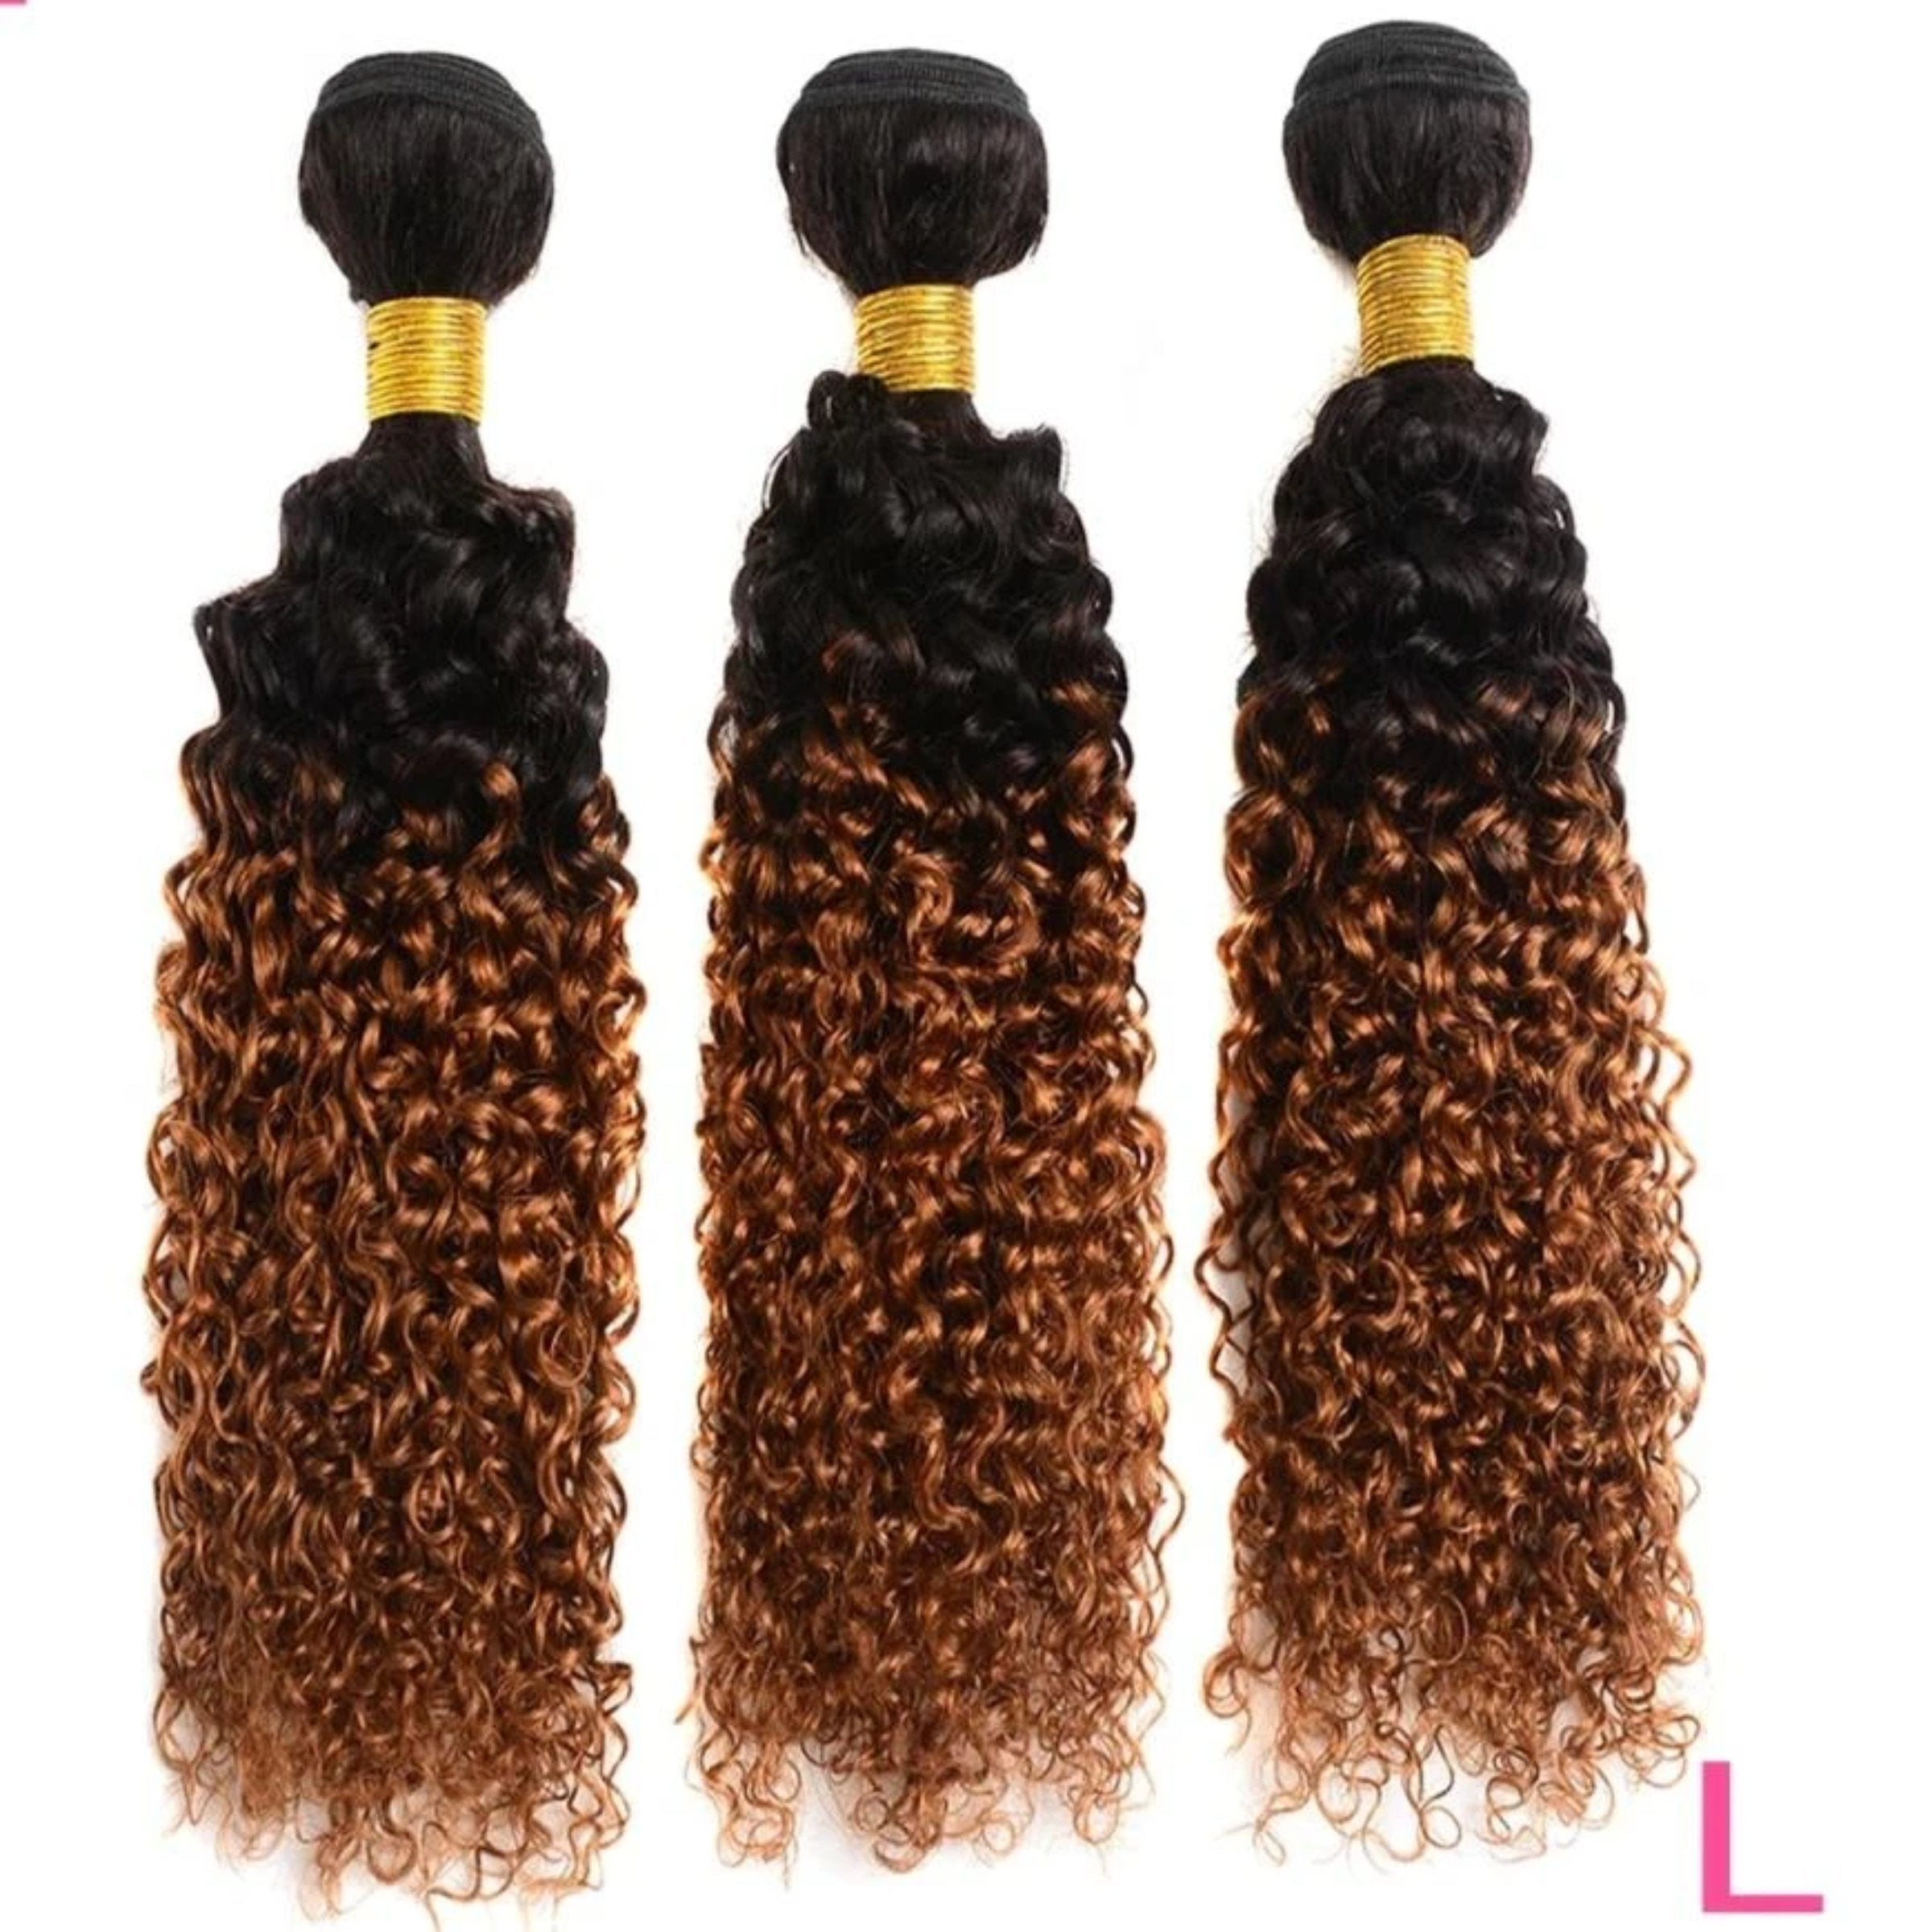 Brown Human Hair Bundles - Fresh Hair Extensions and Accessories